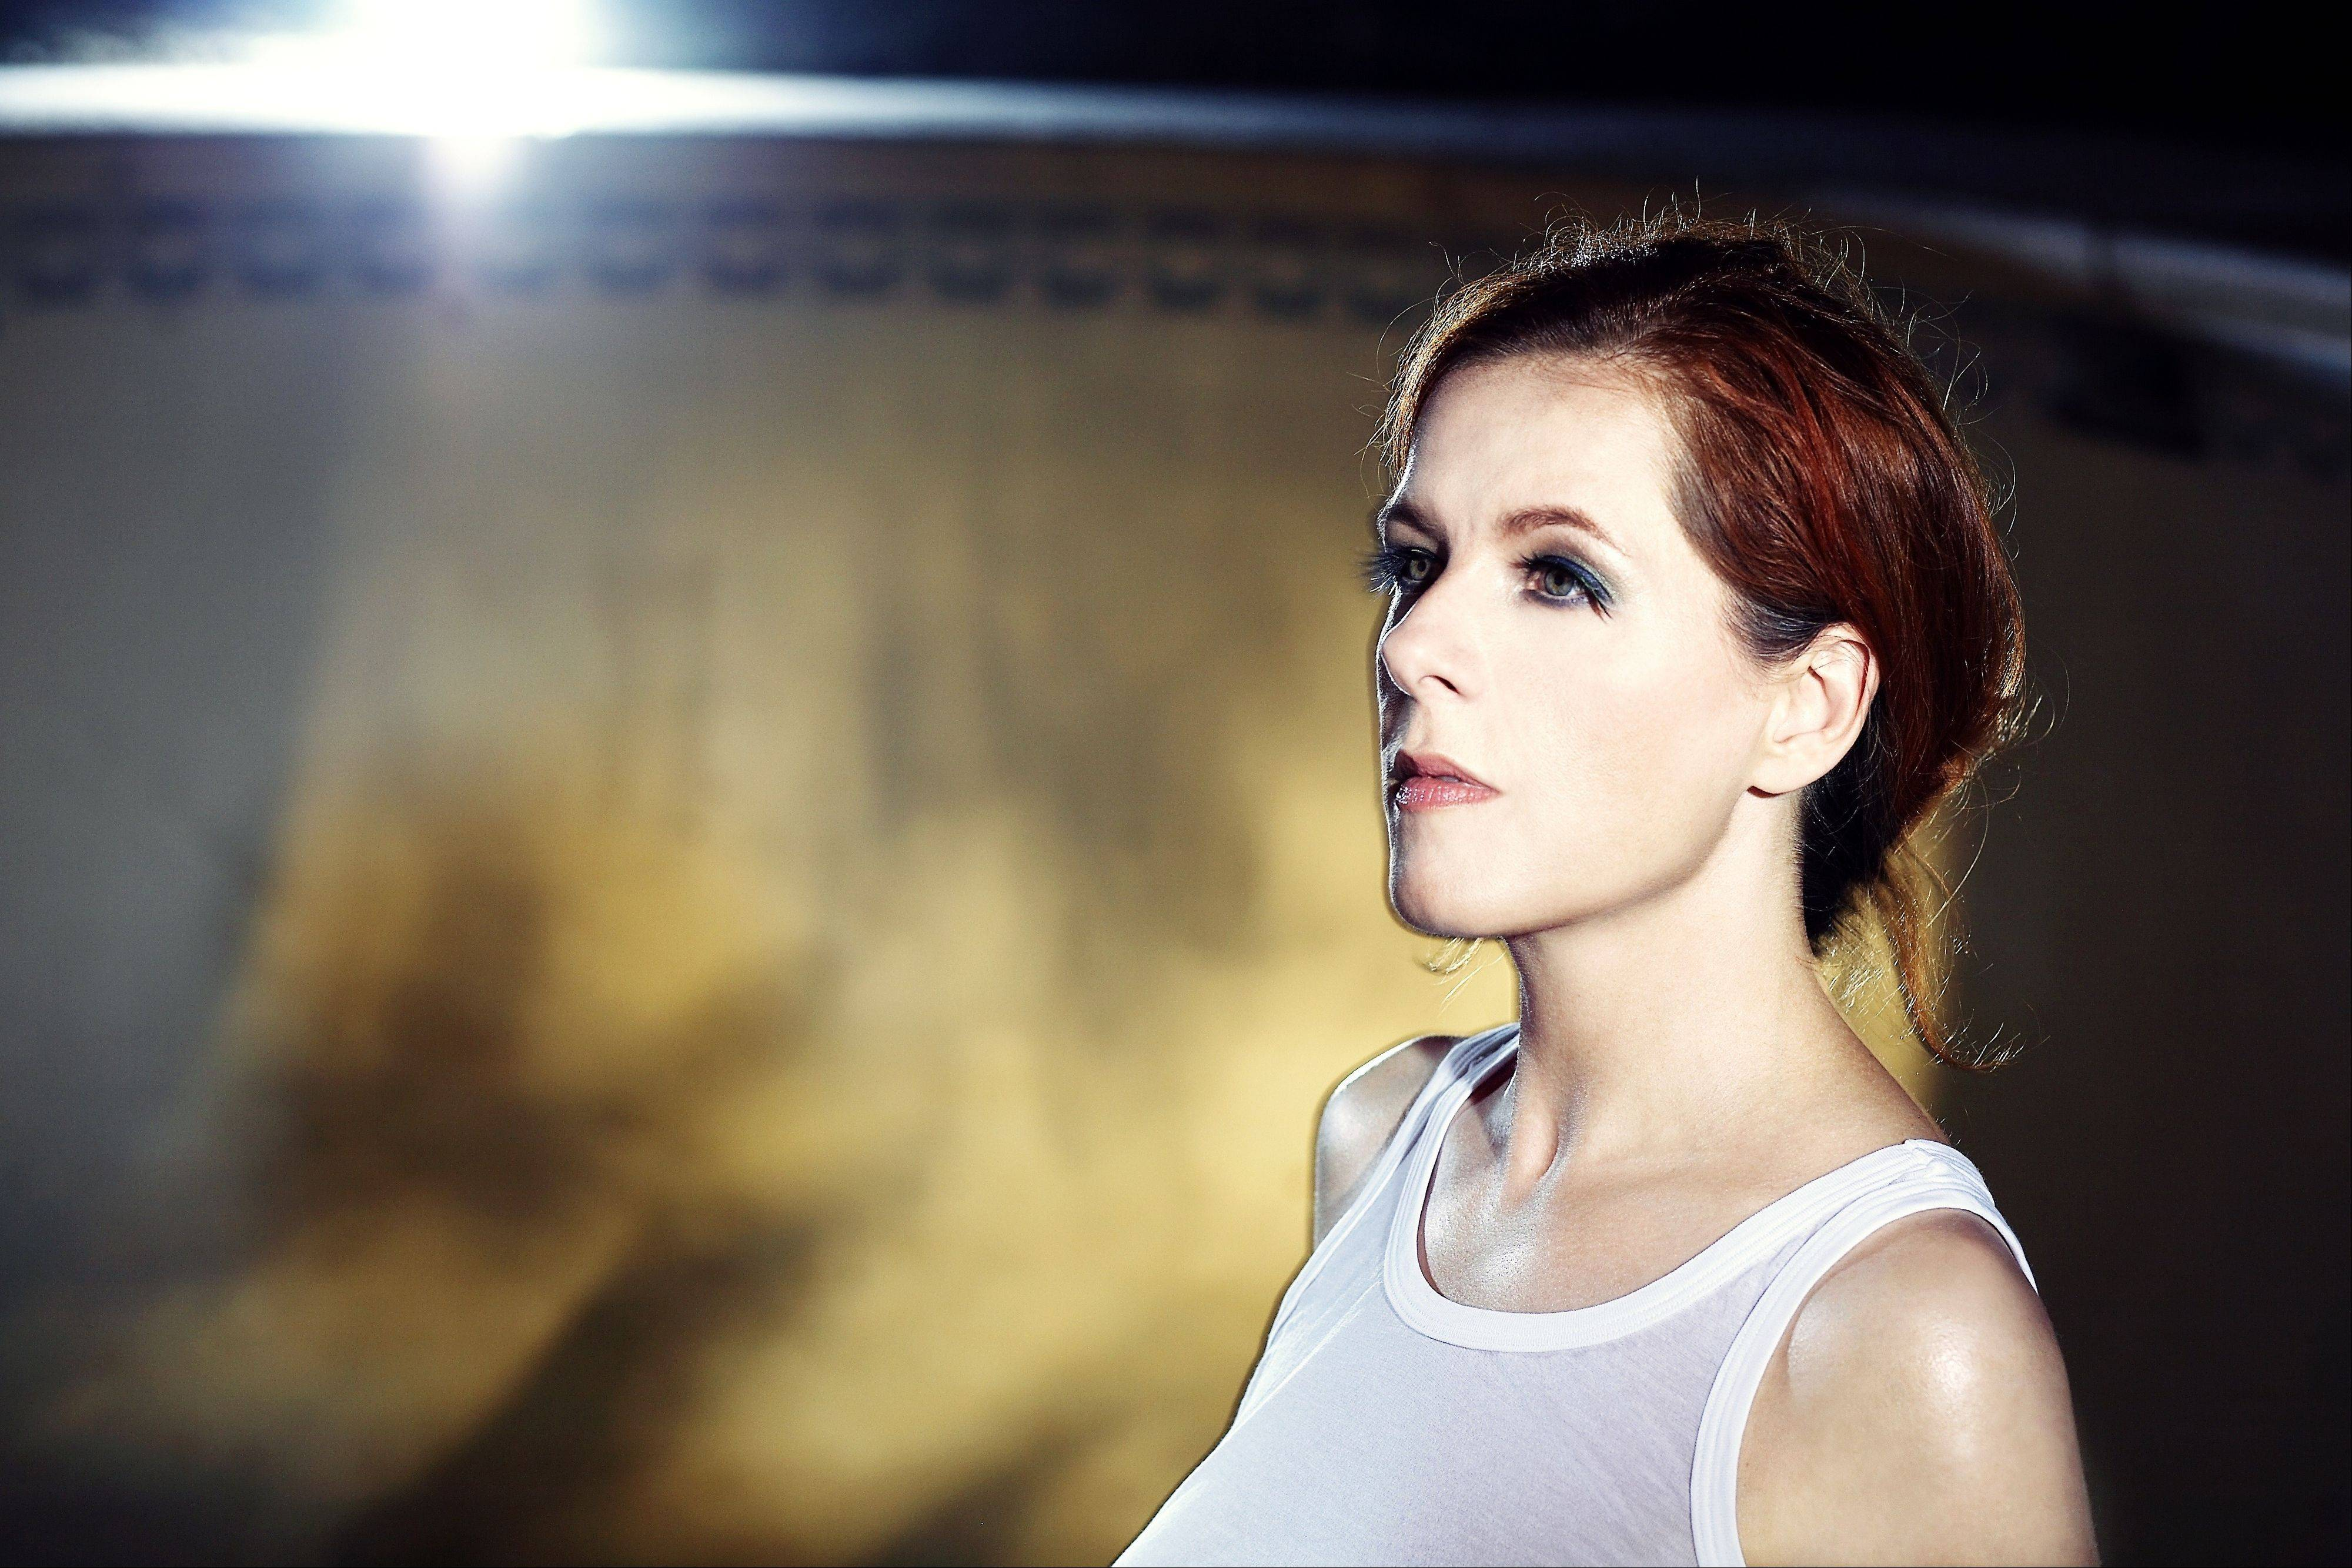 Alt-country singer-songwriter Neko Case will perform at Pitchfork this weekend.